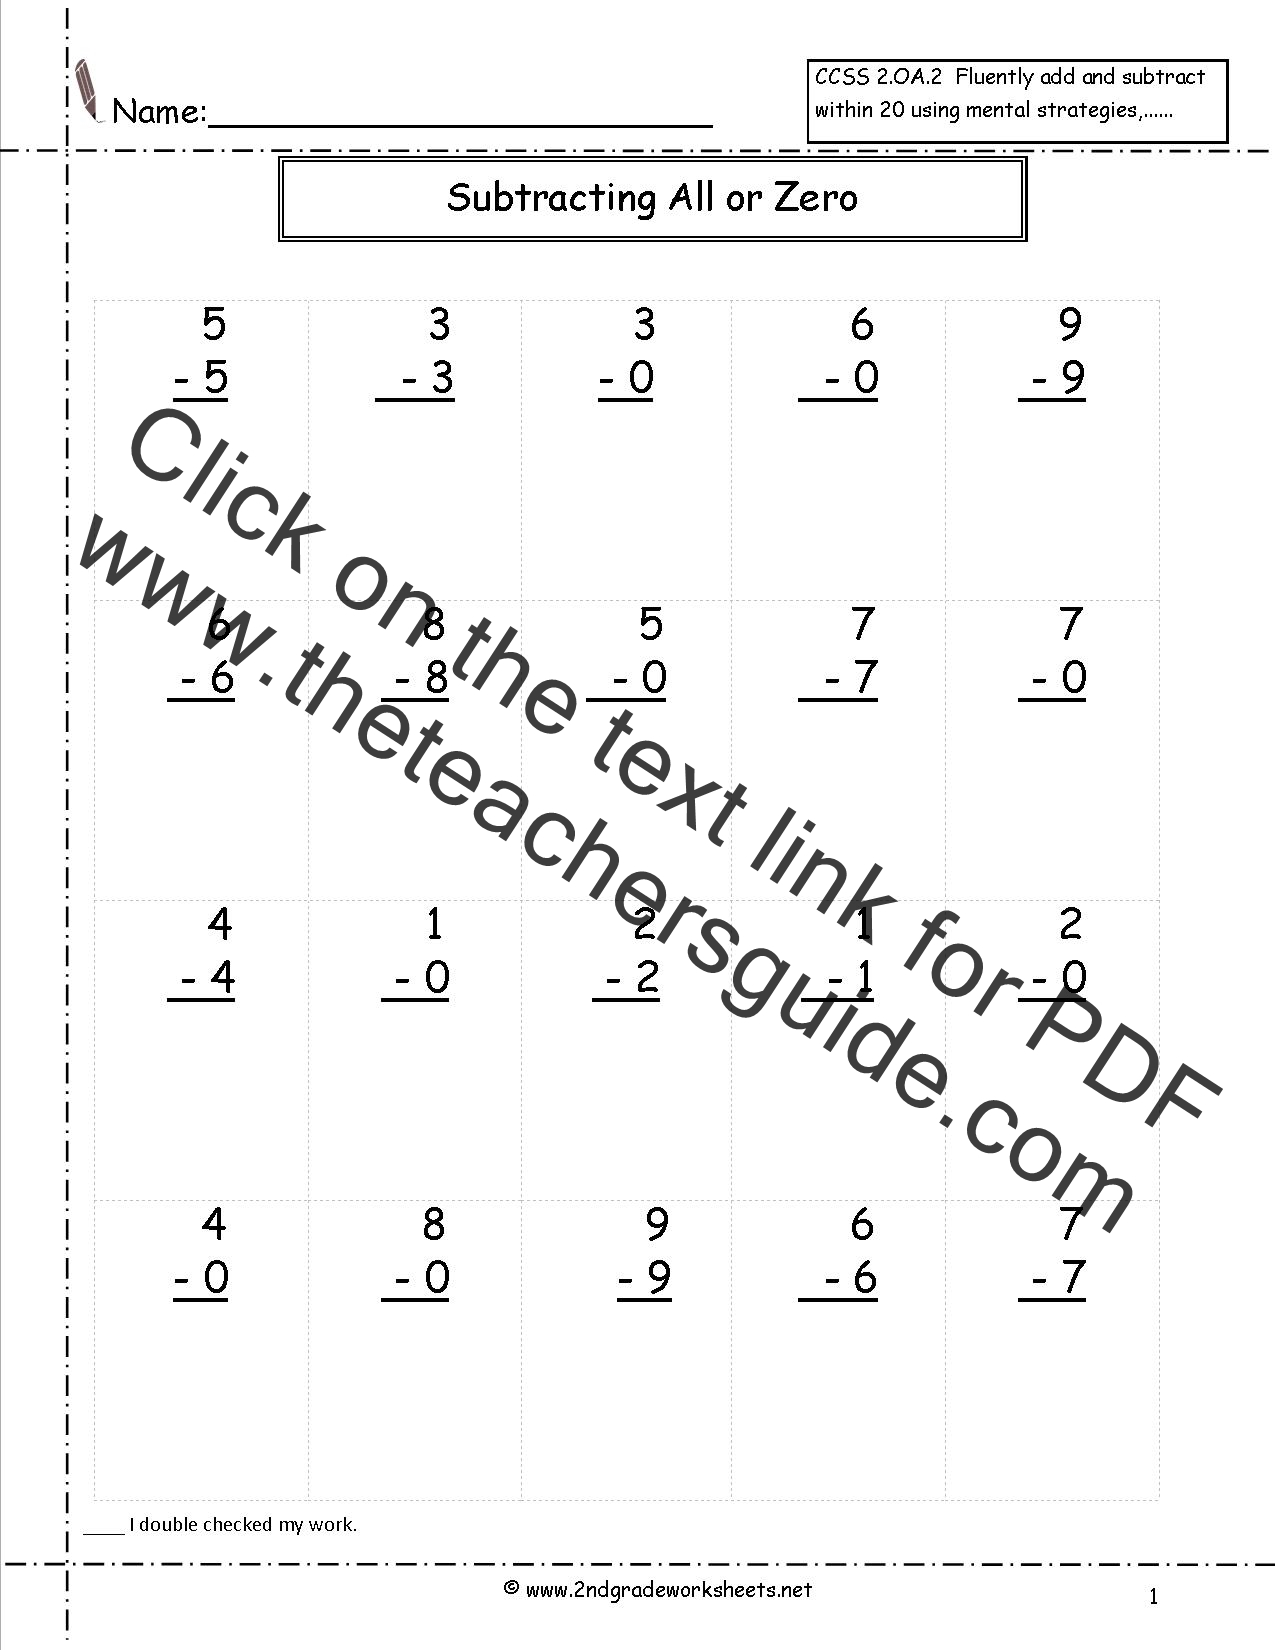 worksheet Adding And Subtracting Problems single digit subtraction fluency worksheets subtracting all or zero worksheet